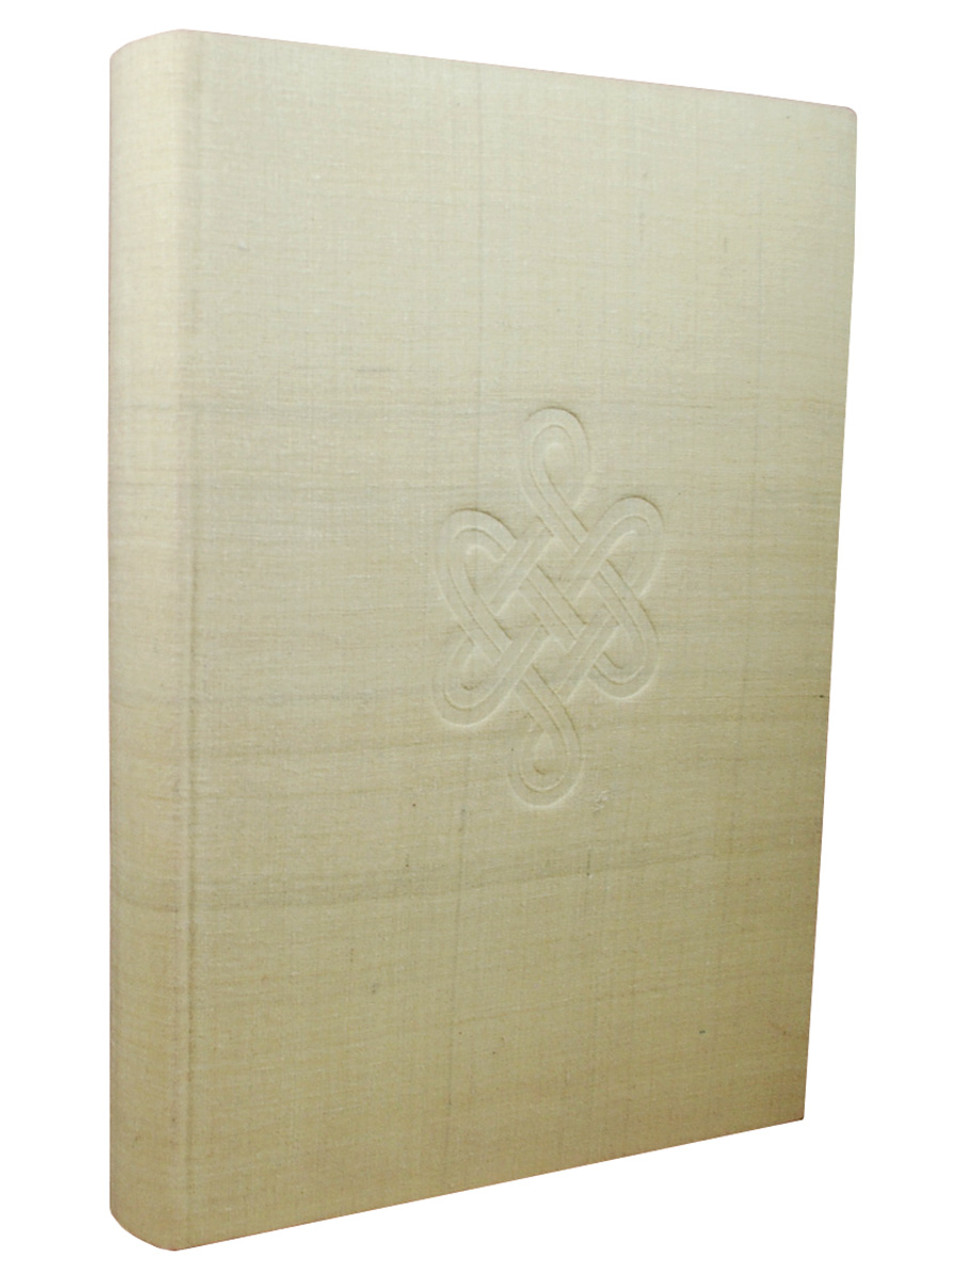 "Heinrich Harrer ""Seven Years In Tibet"" Signed Limited Deluxe Edition No. 21 of 300, Silk Binding,  Wooden Boards [Very Fine]"